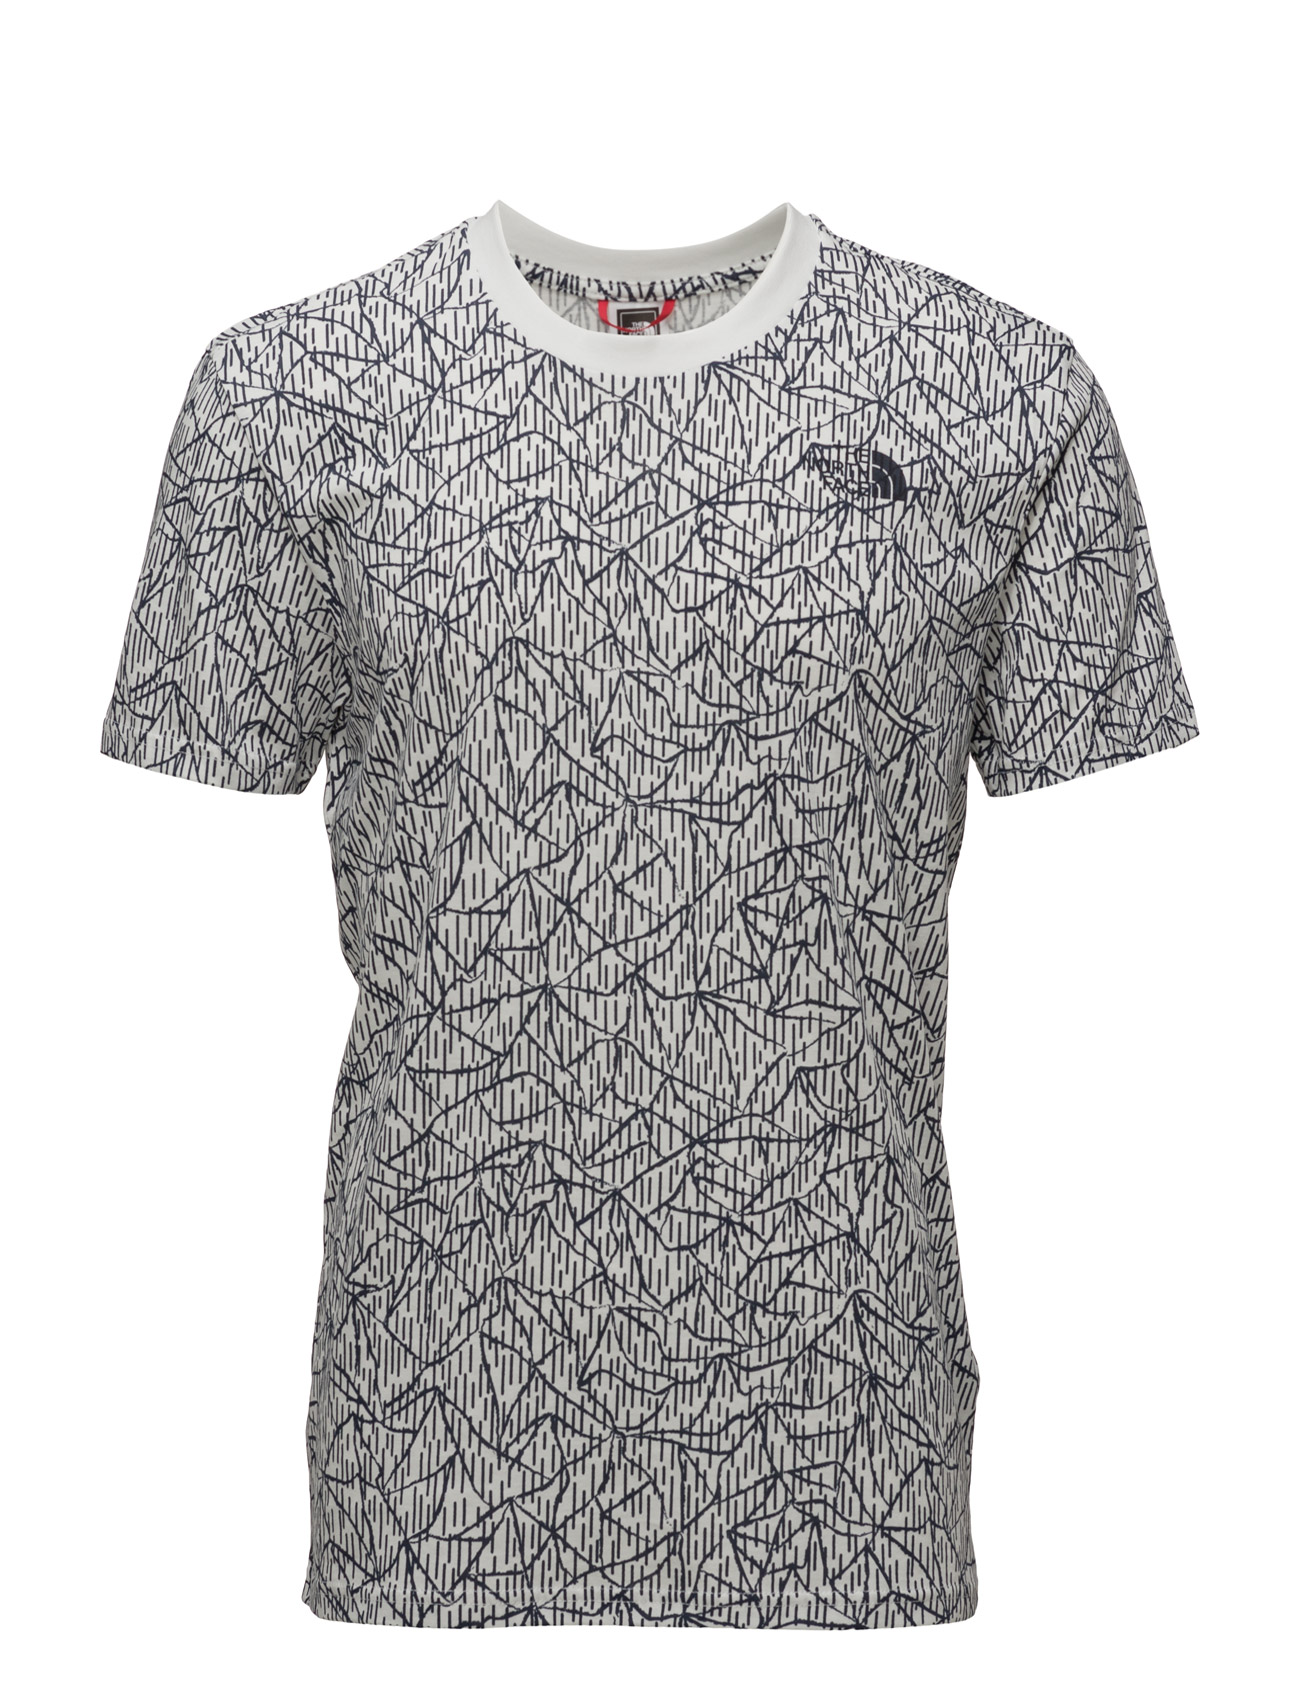 M ss simple dome tee fra the north face fra boozt.com dk